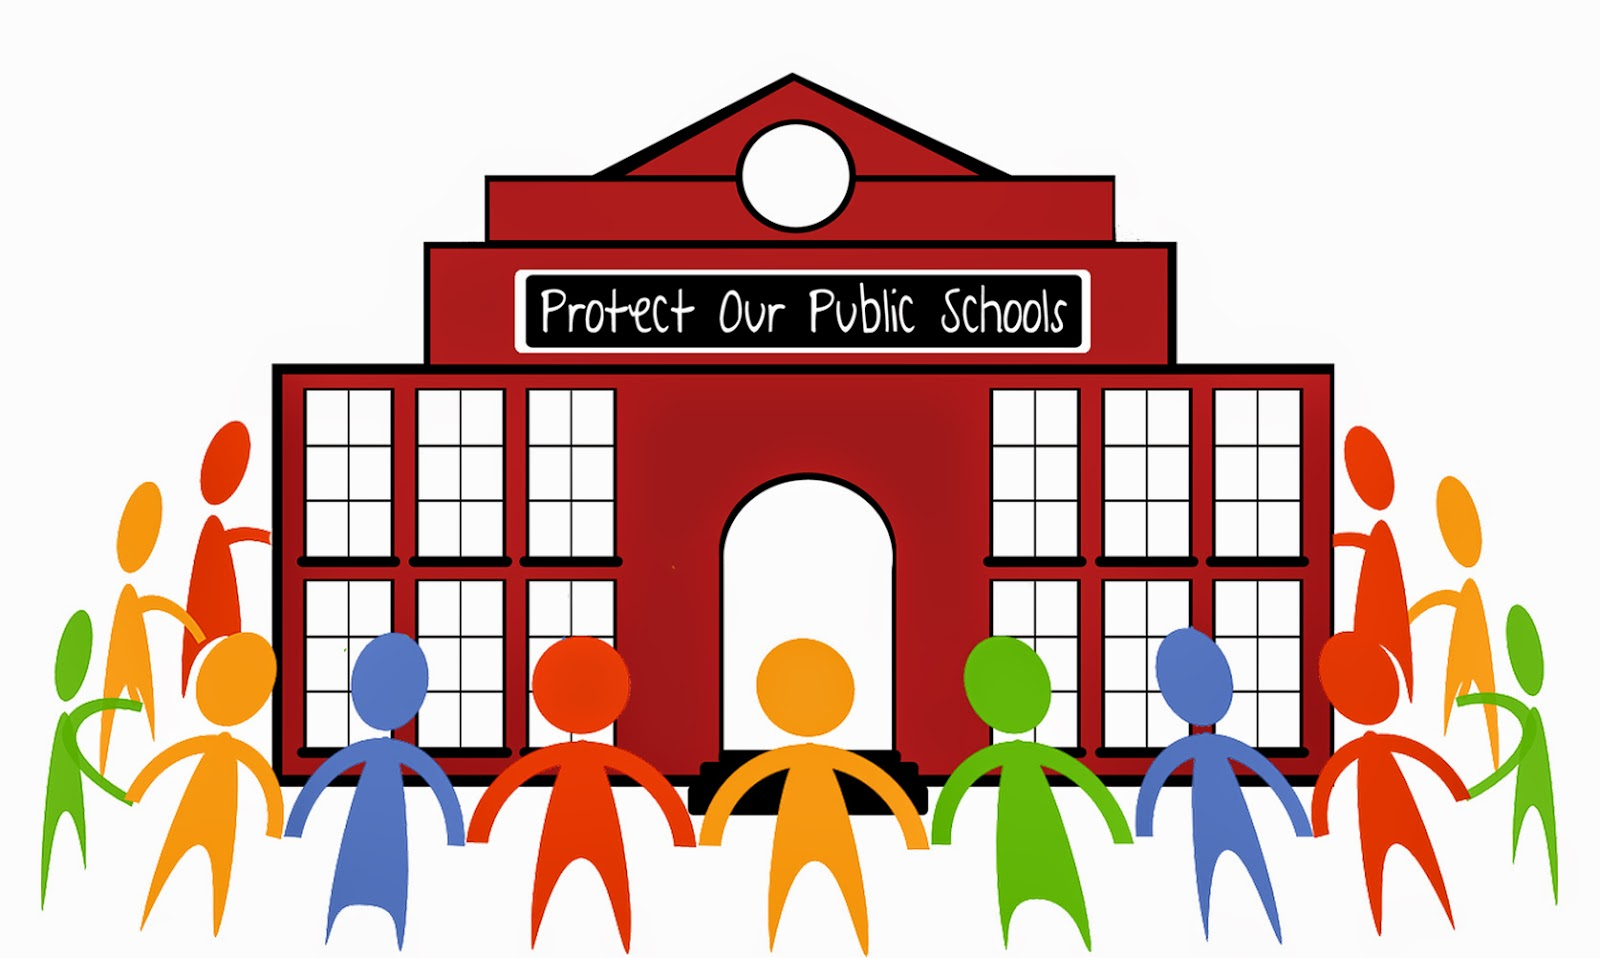 NYC Public School Parents: Please join us to protect our.